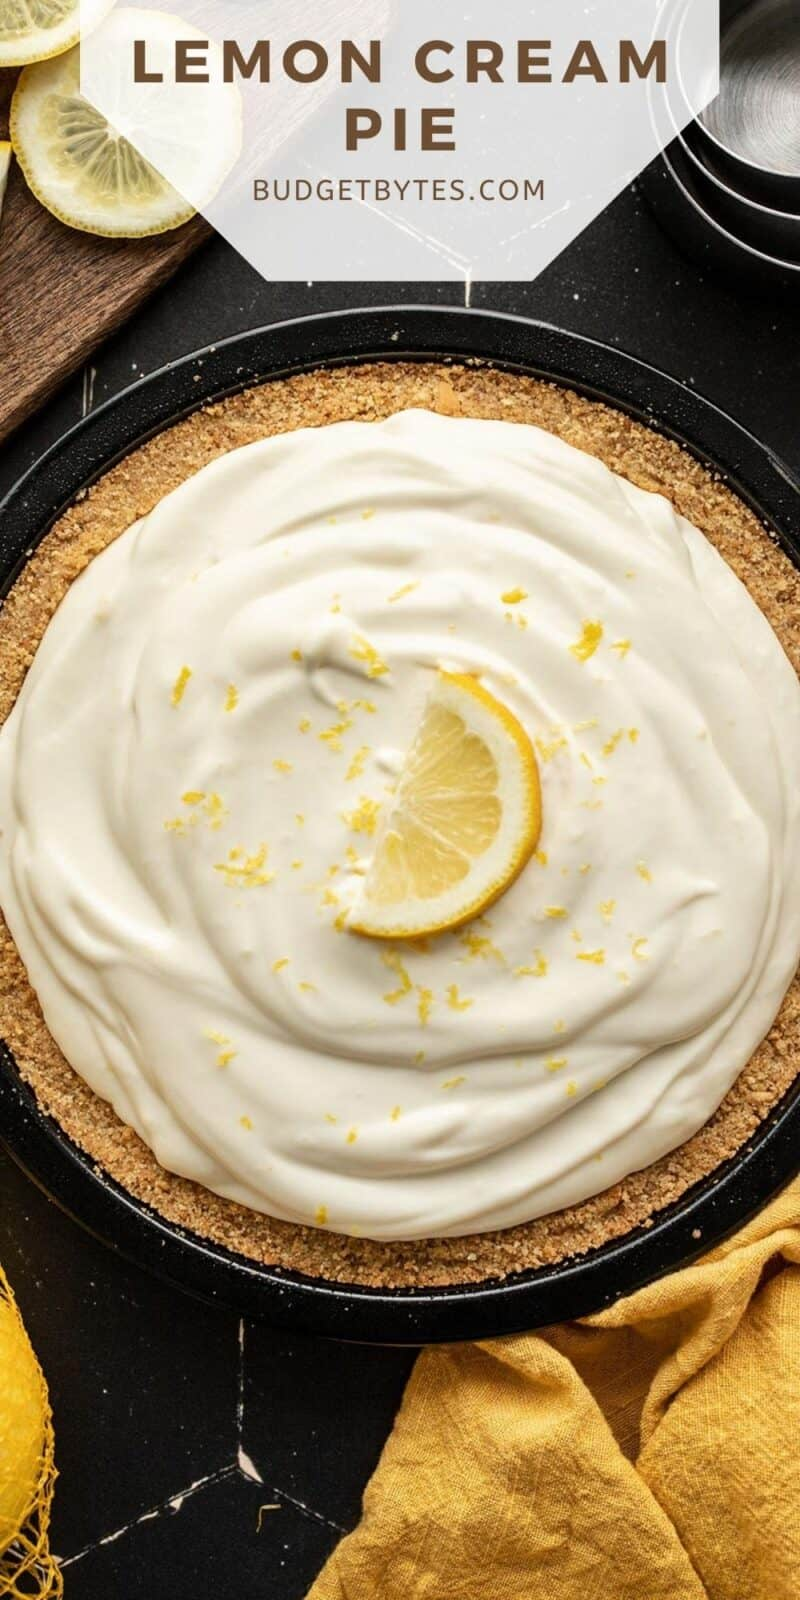 Overhead view of a lemon cream pie with title text at the top